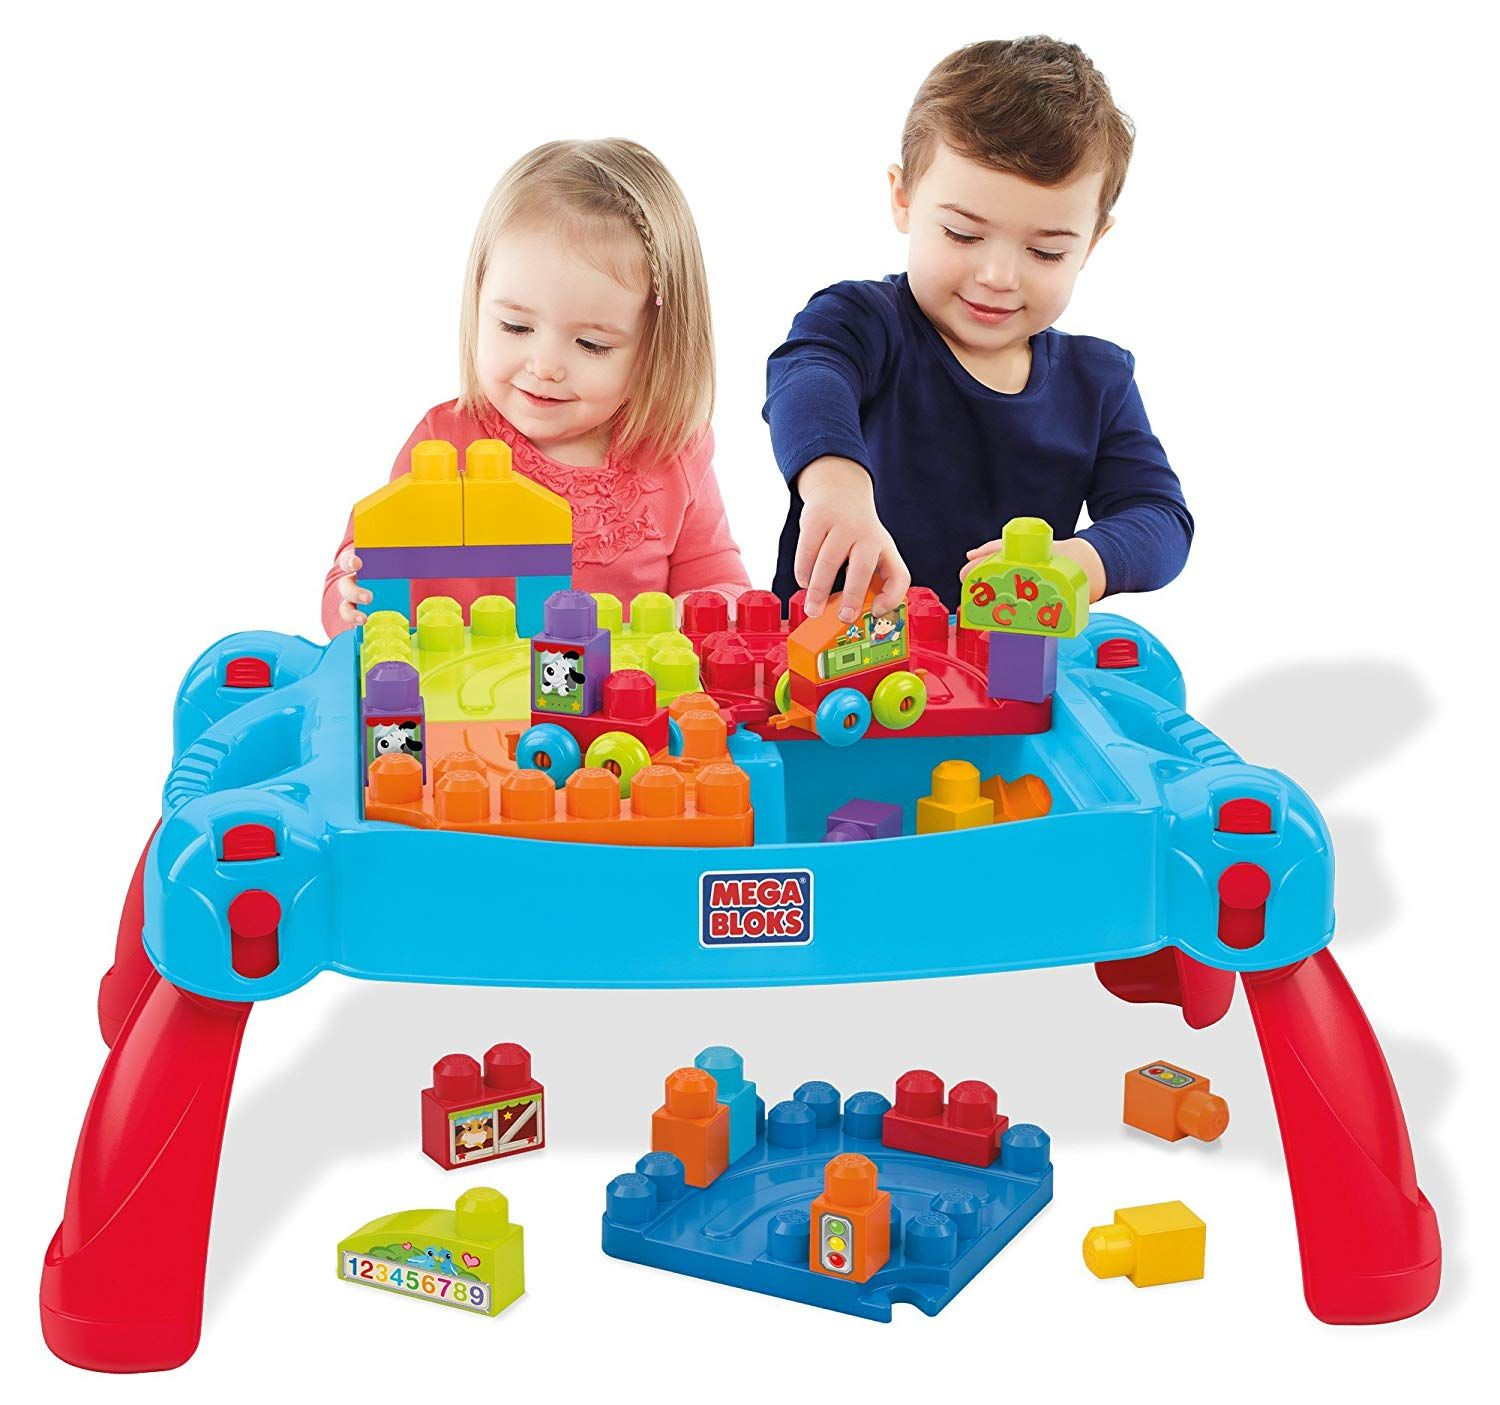 Best Gifts And Toys For 2 Year Old Boys Kids Building Toys Kids Fun Play Learning Toys